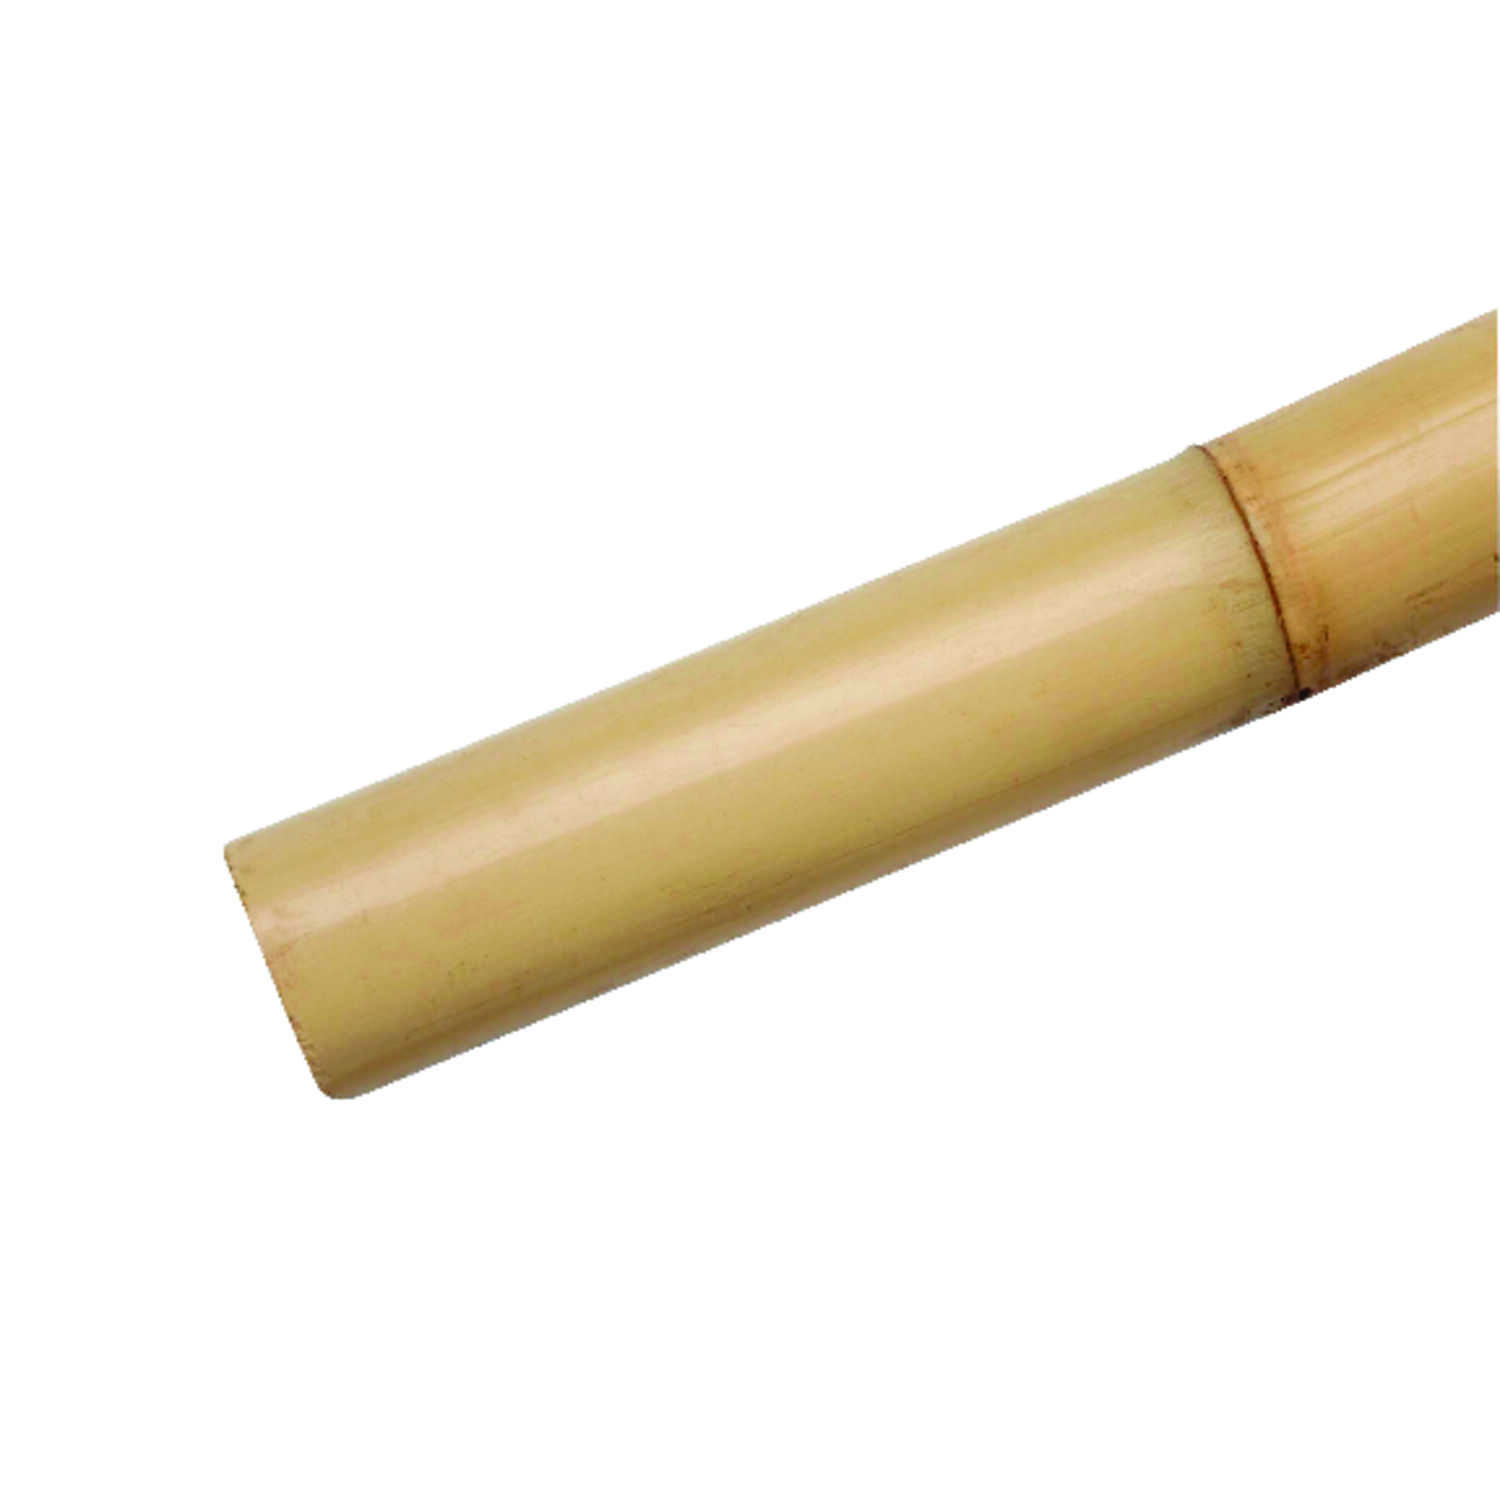 Waddell  1-3/4 in. W x 1-1/2 in.  x 4 ft. L Bamboo  Pole